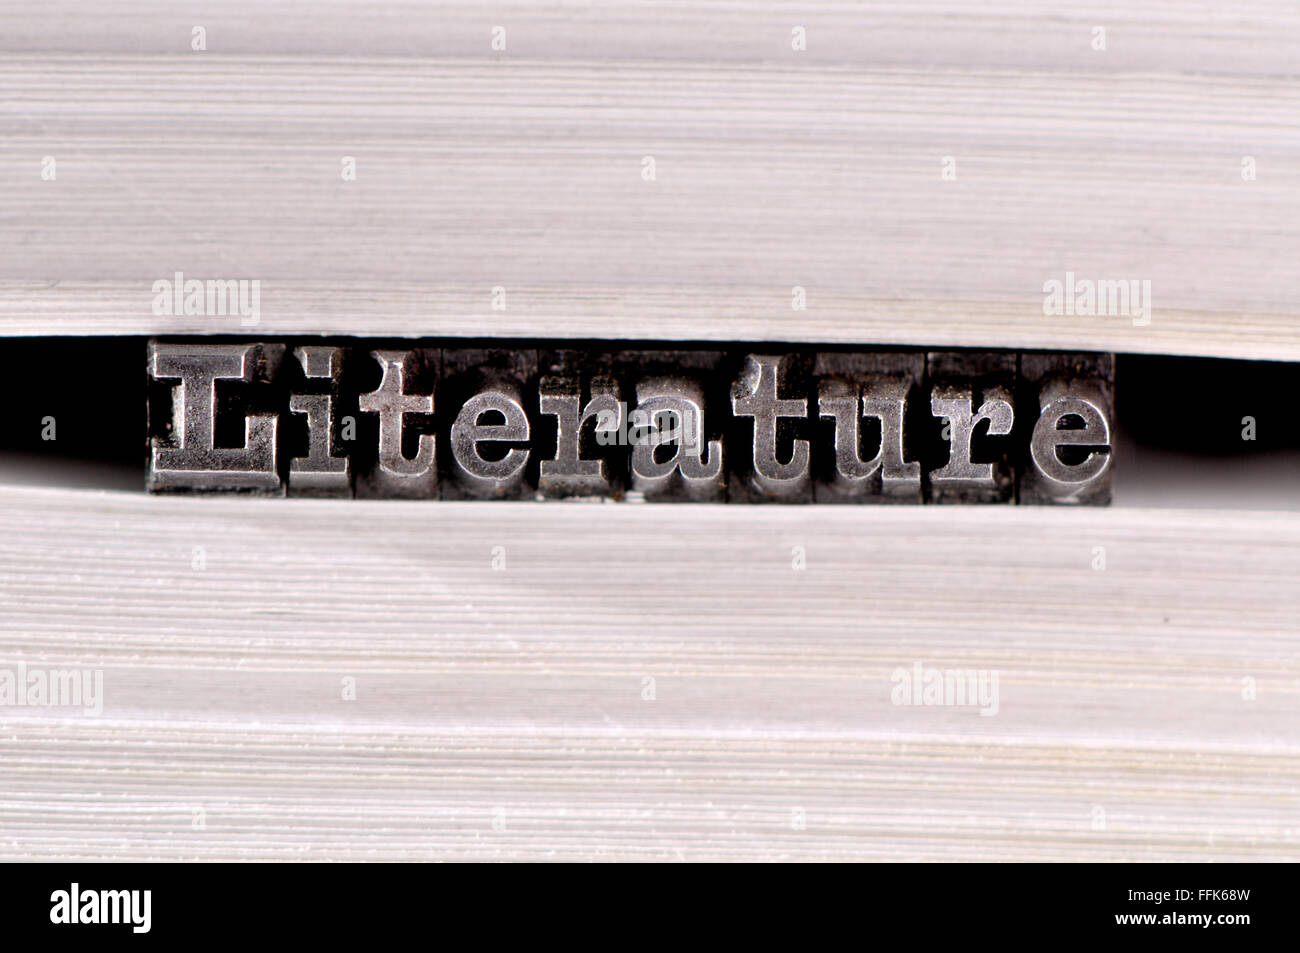 Letterpress characters spelling out Literature in the pages of a book - Stock Image